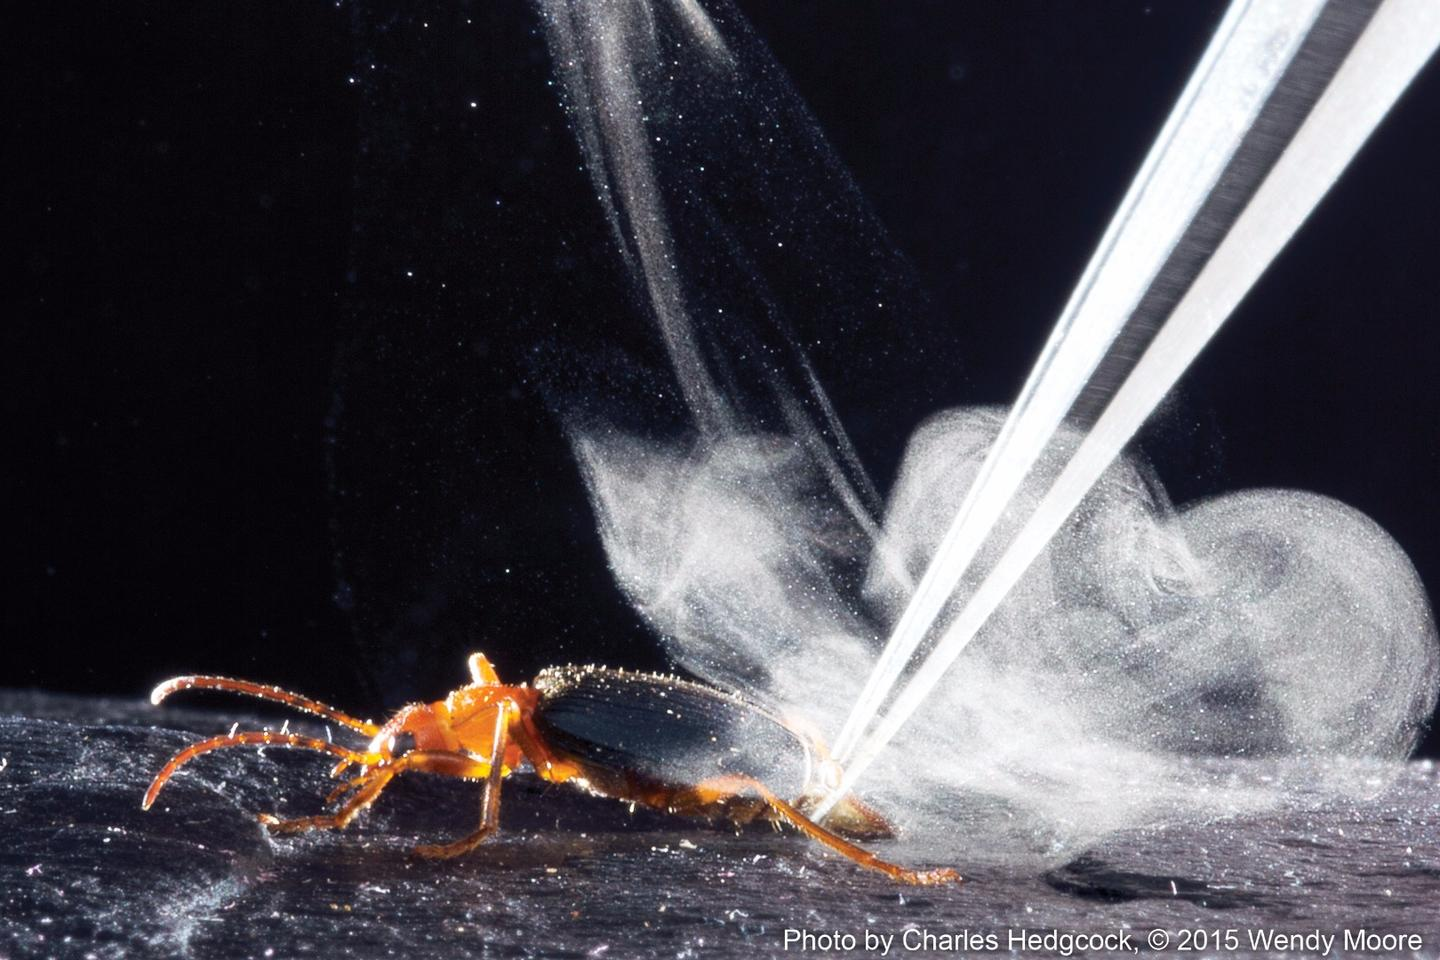 Shot of the bombardier beetle producing its distinctive defensive spray (Photo: Charles Hedgcock)